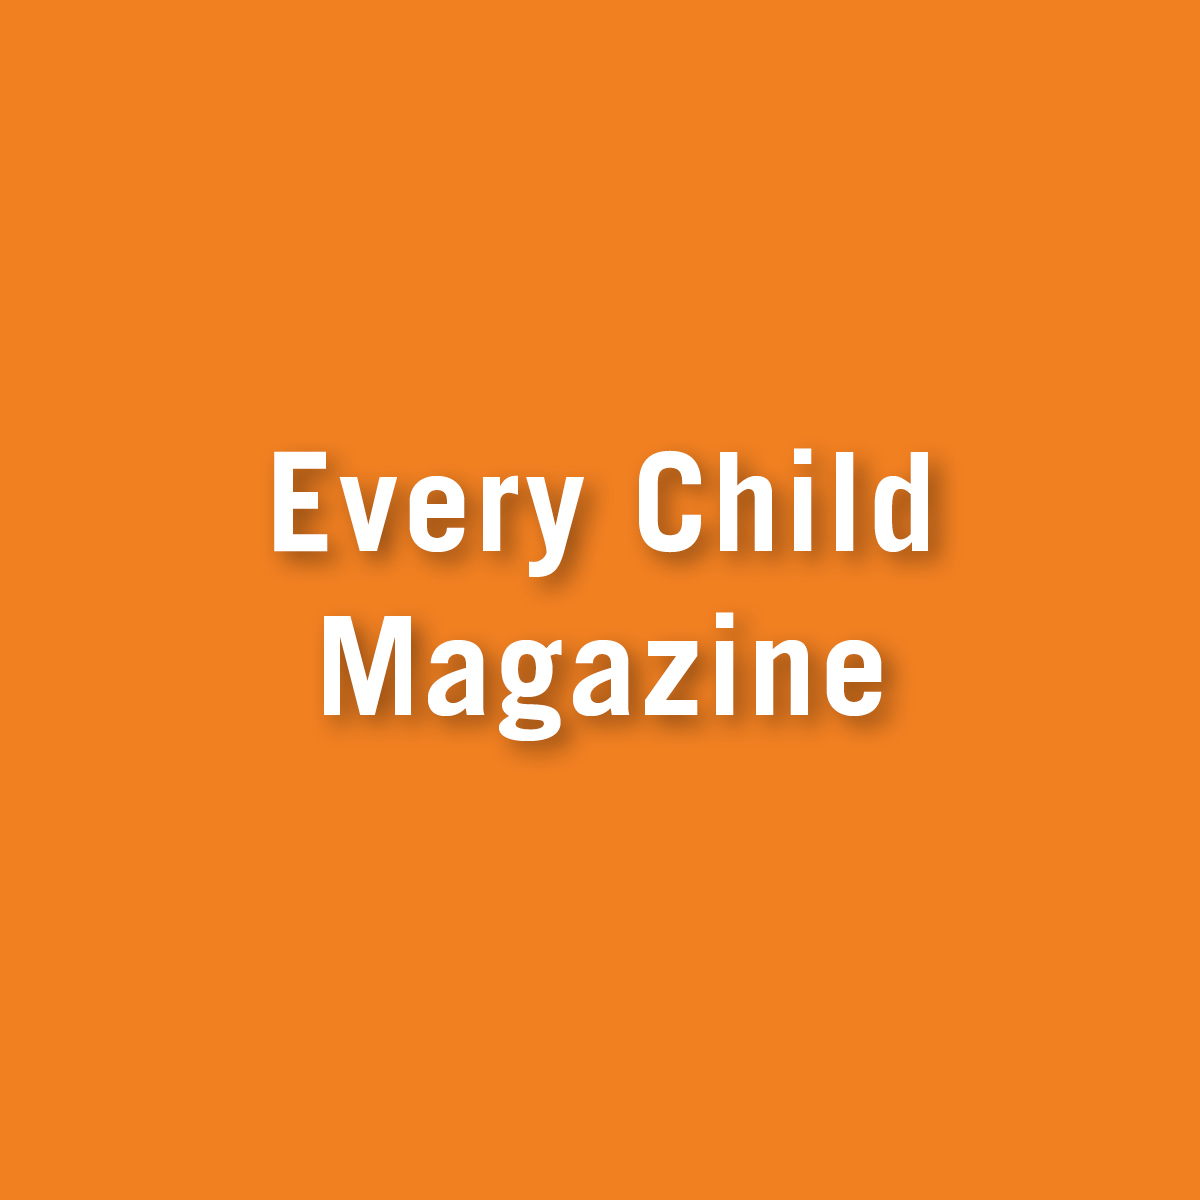 Every Child Magazine